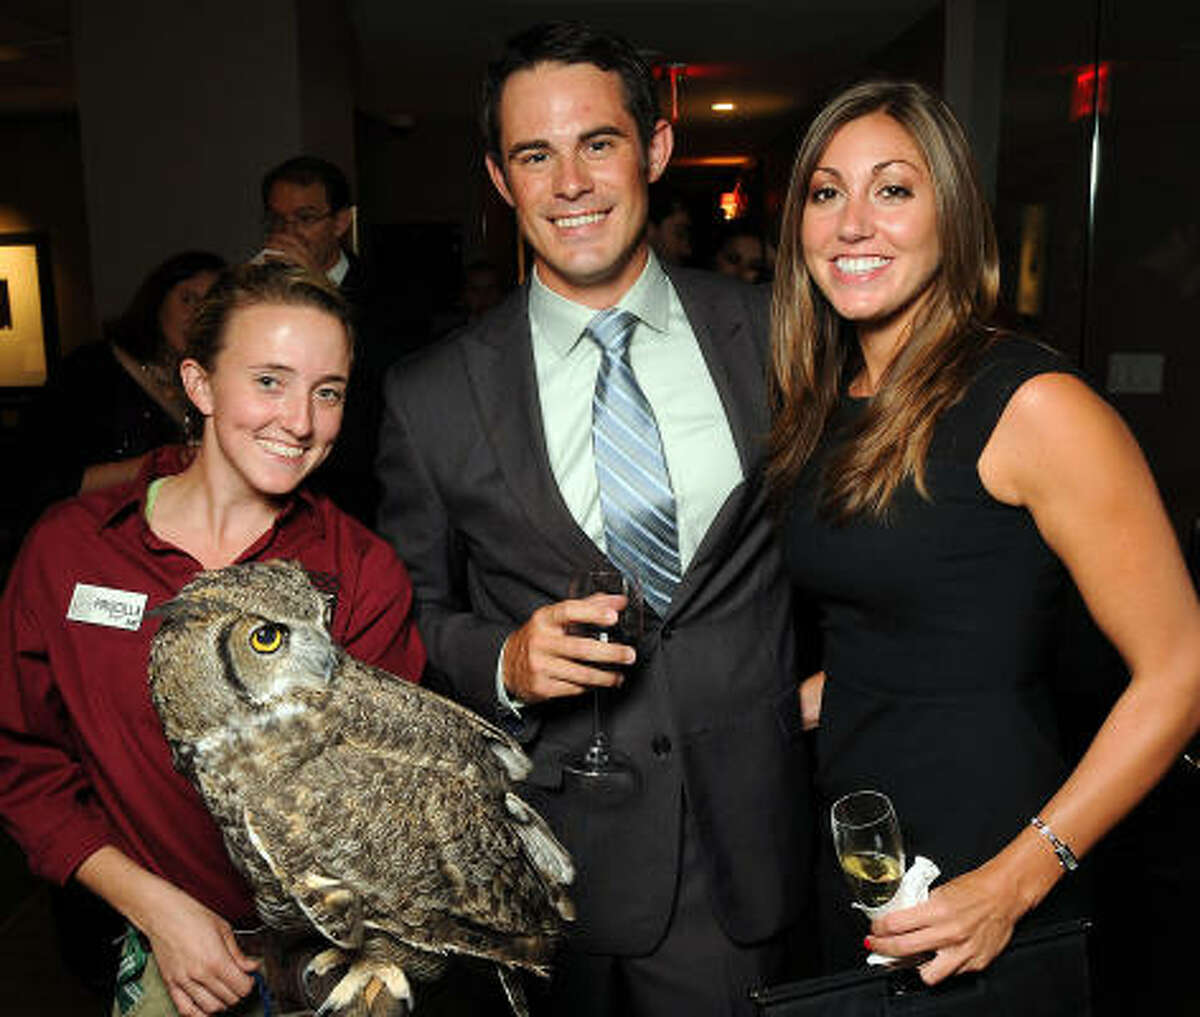 The Houston Zoo's Priscilla Farley holding Ariel the great horned owl with Scott Asimakis and Rose Johnson.